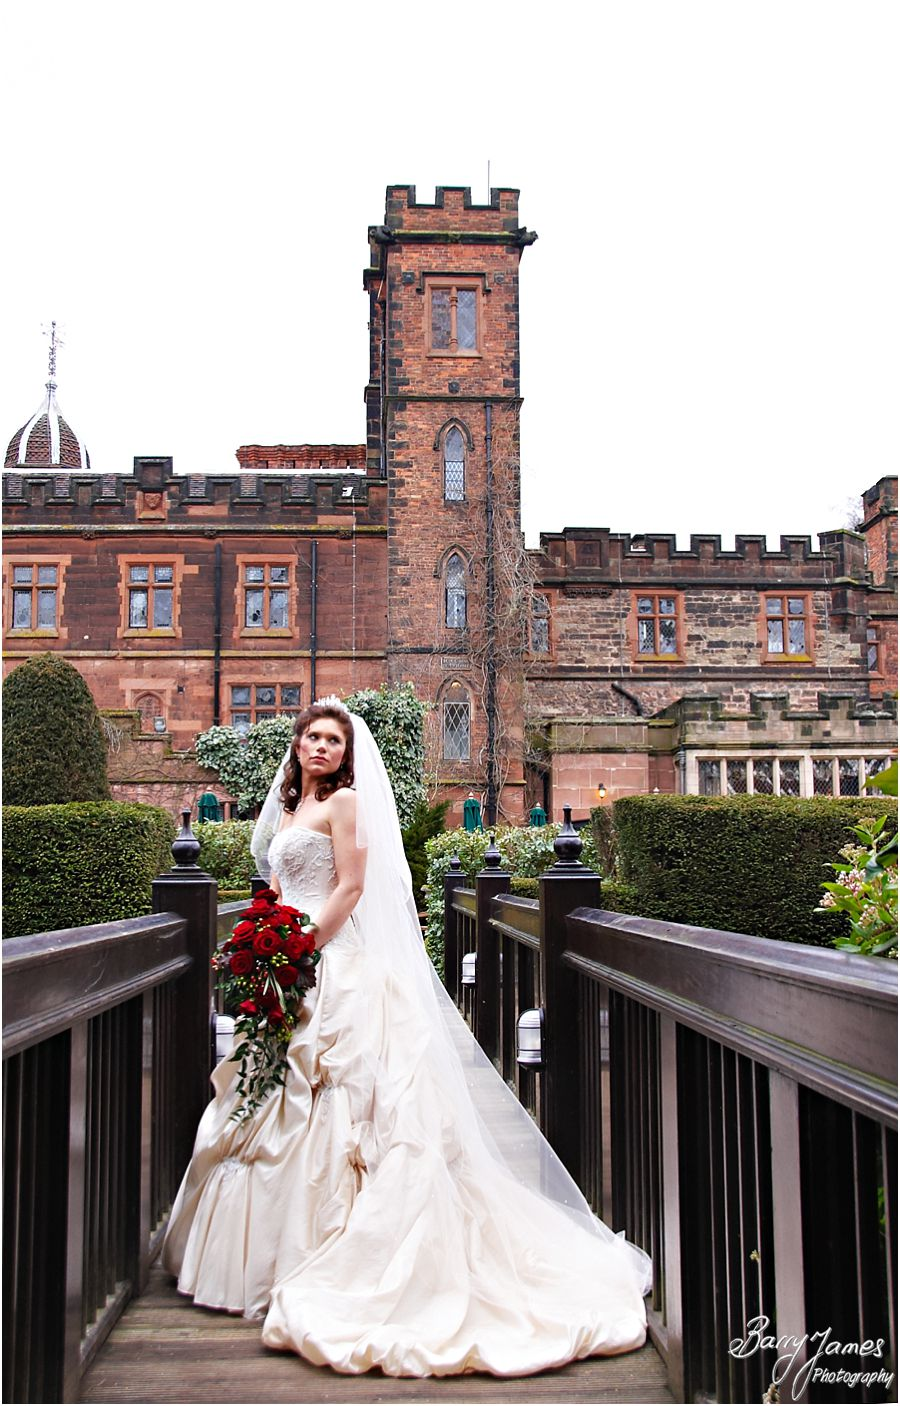 Creative portraits around the stunning gardens of New Hall in Walmley by Contemporary Wedding Photographer Barry James